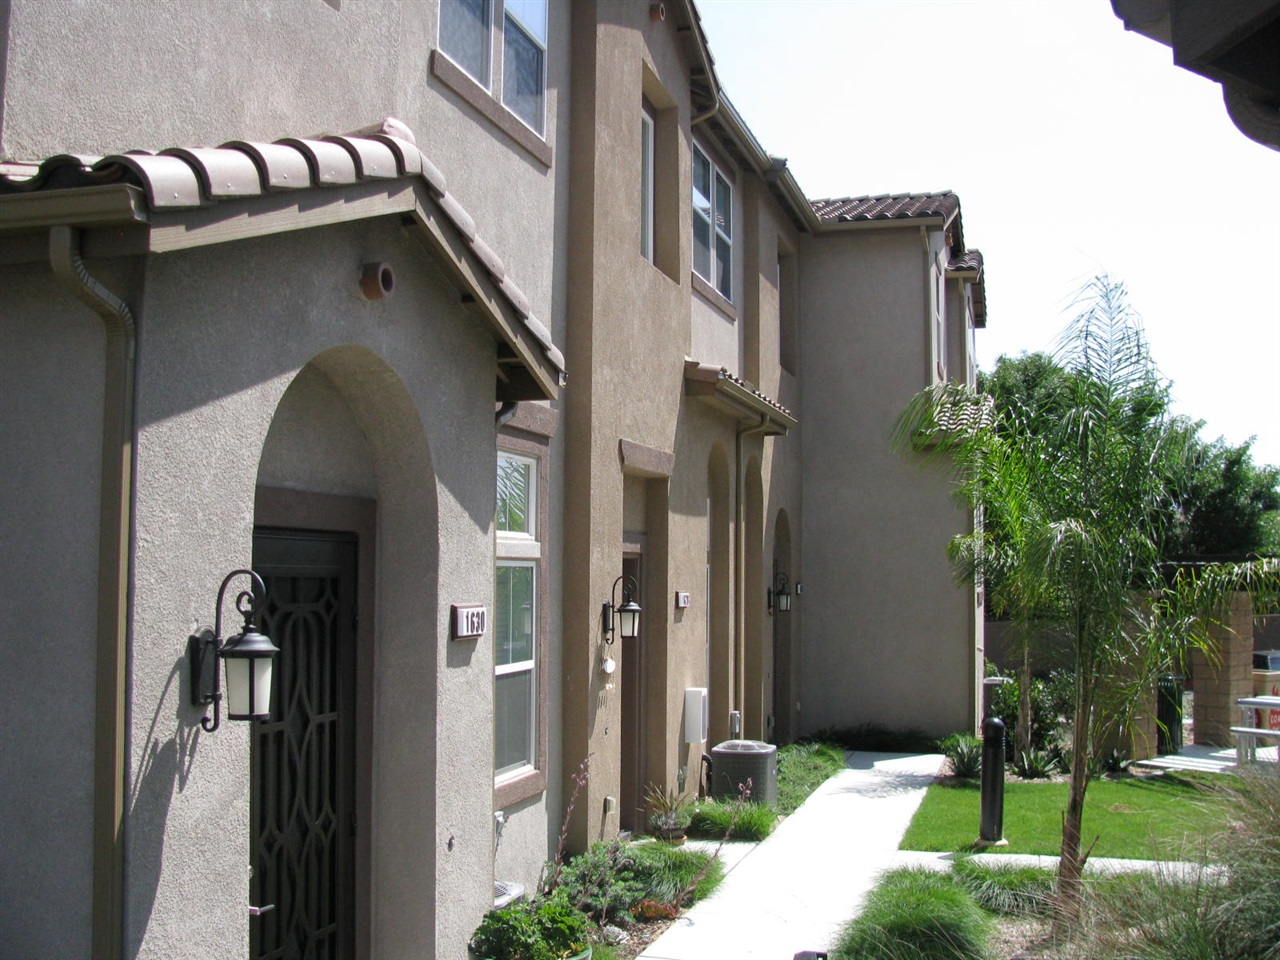 Photo 3: LAKE SAN MARCOS Townhome for sale : 3 bedrooms : 1646 Waterlily Way in San Marcos